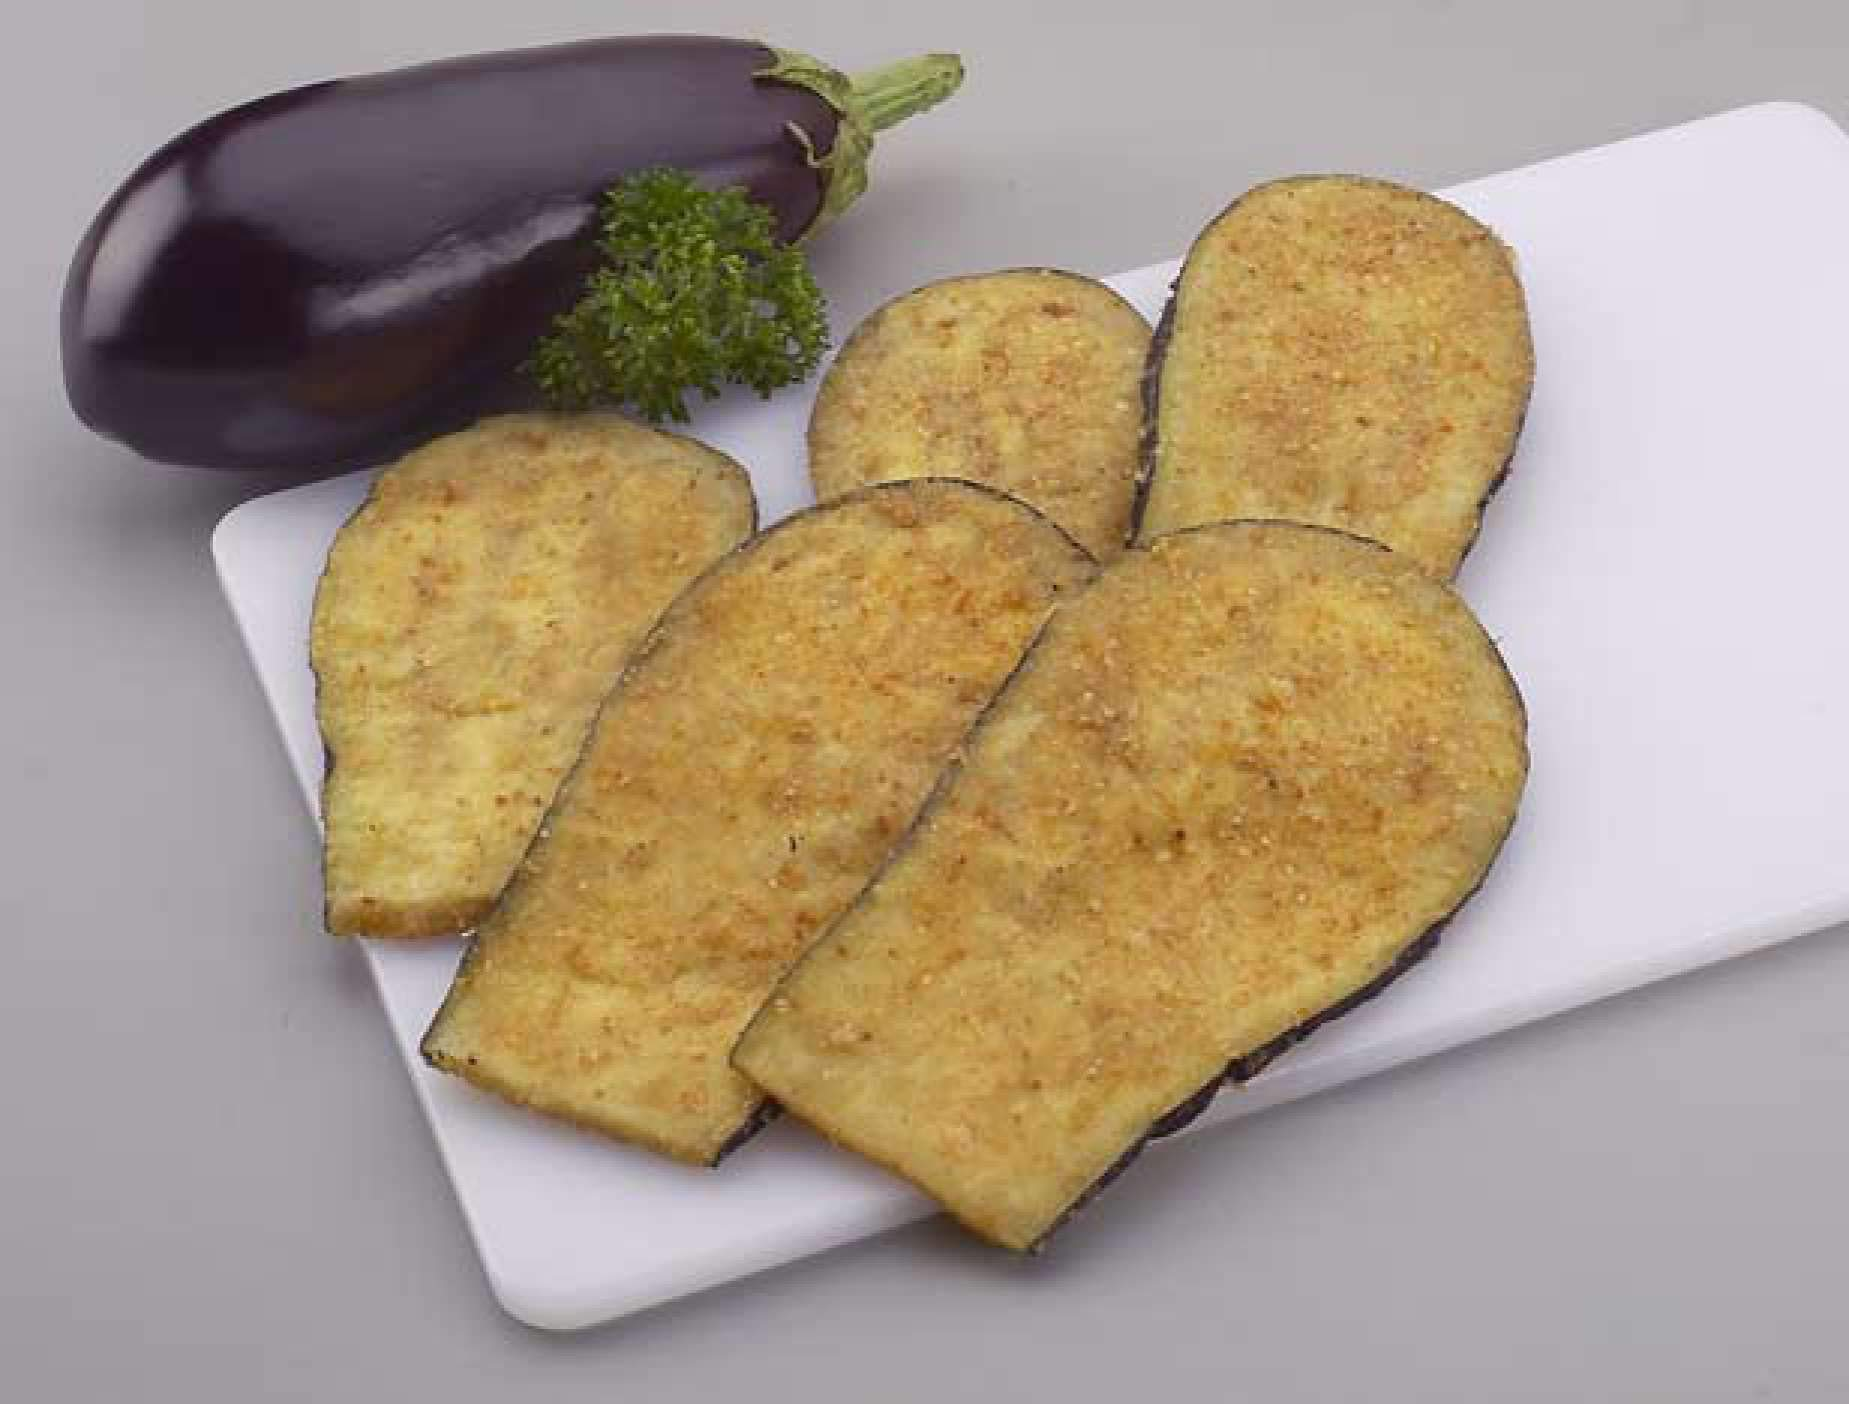 Celentano 1/4'' Quick Frozen Skin-On Naples Cut Eggplant Cutet 5 lb (Pack of 2)